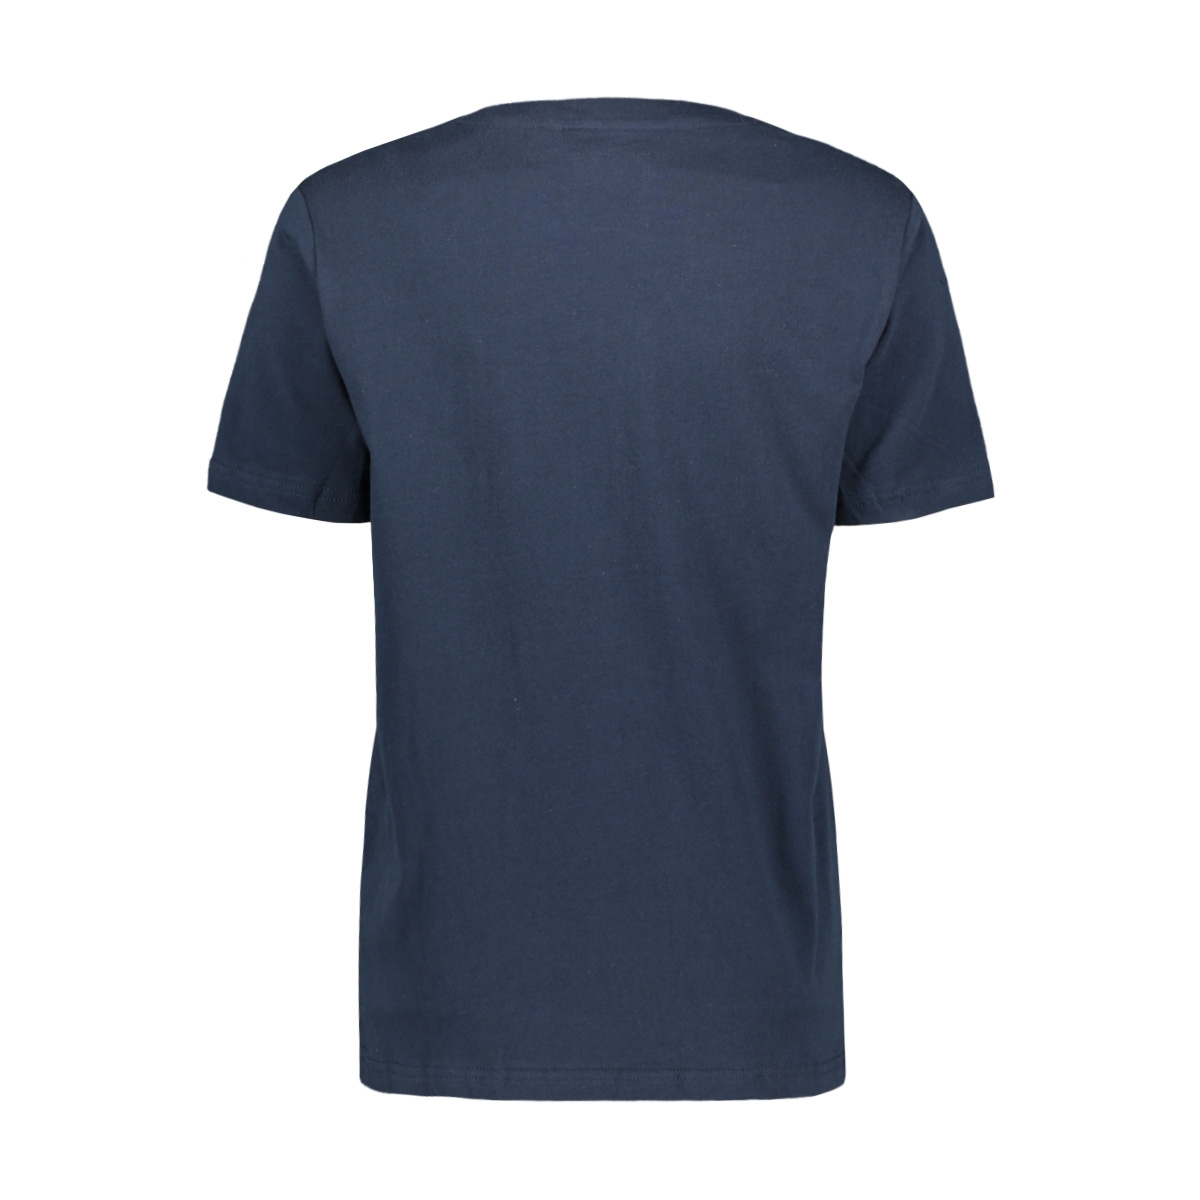 sb rainbow entry tee w1010124a superdry t-shirt eclipse navy